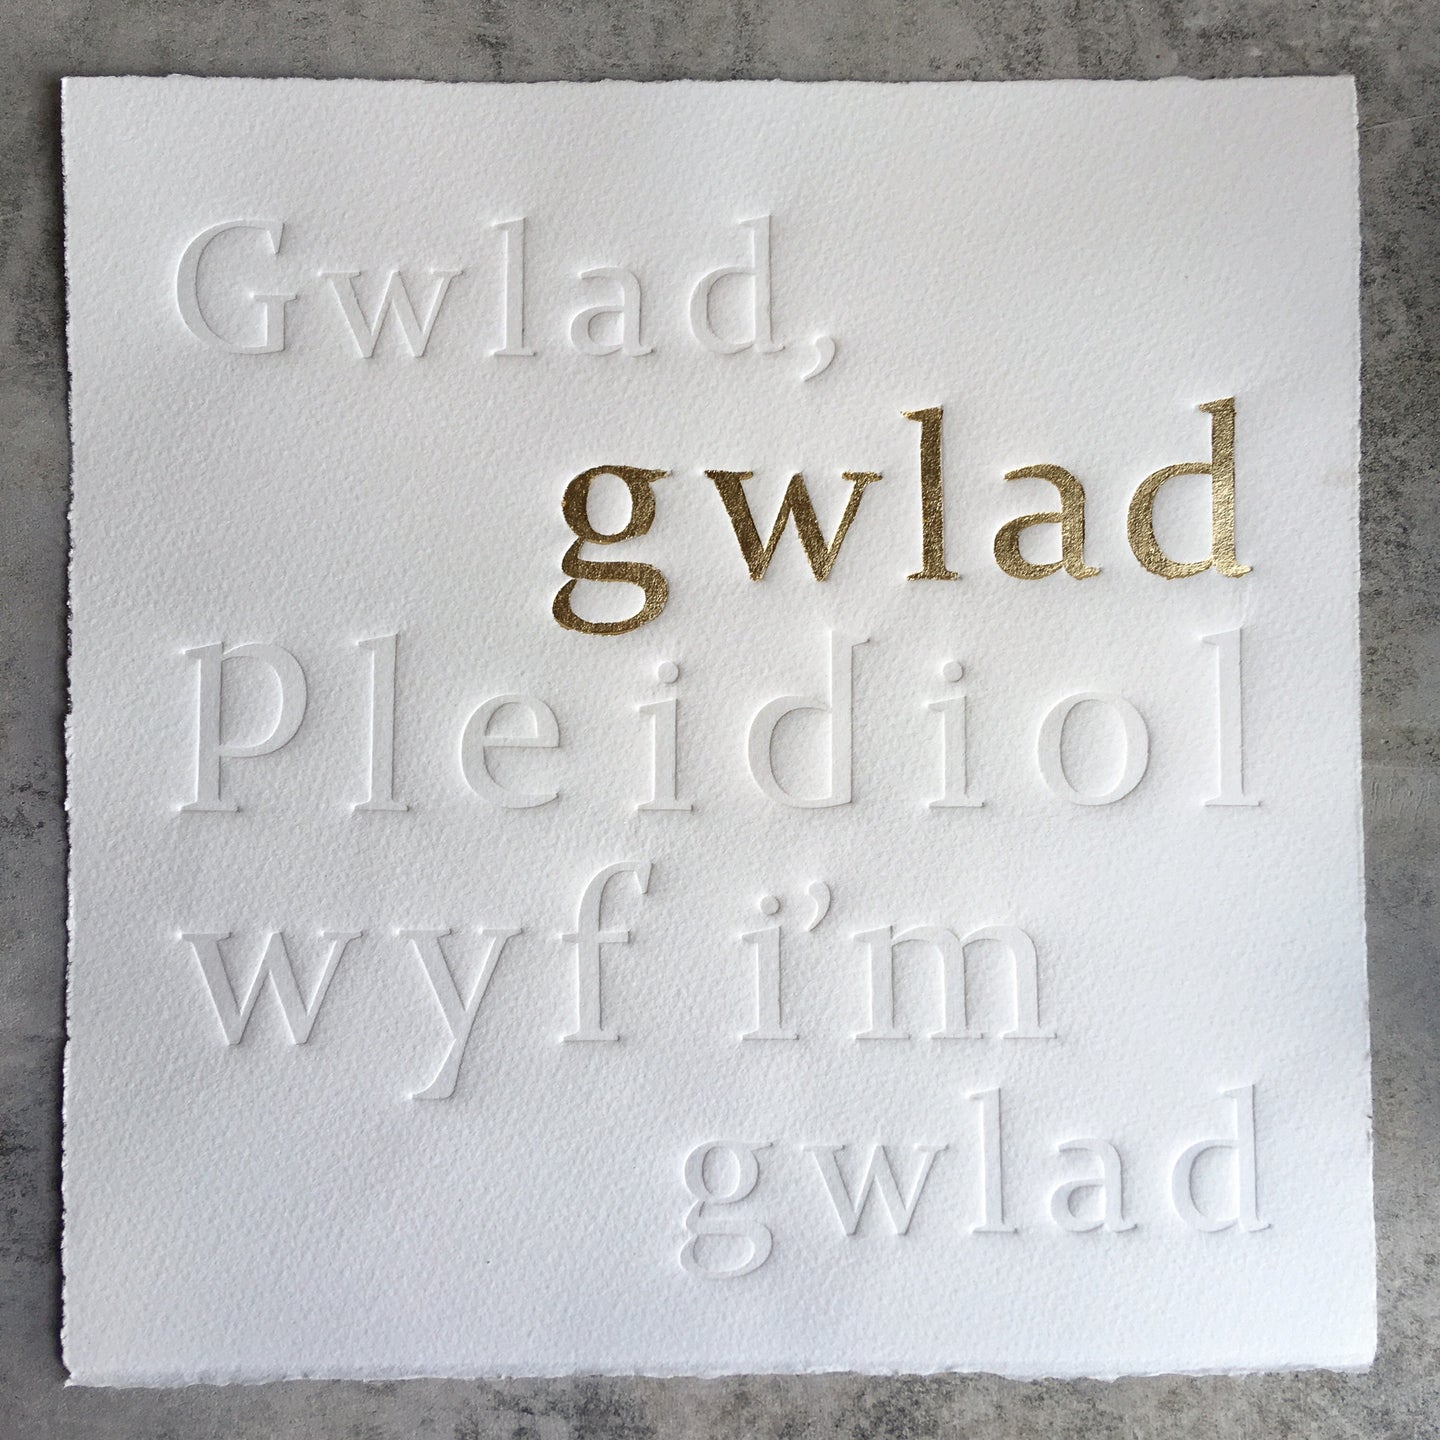 Gwlad Gwlad : 24ct gold on white